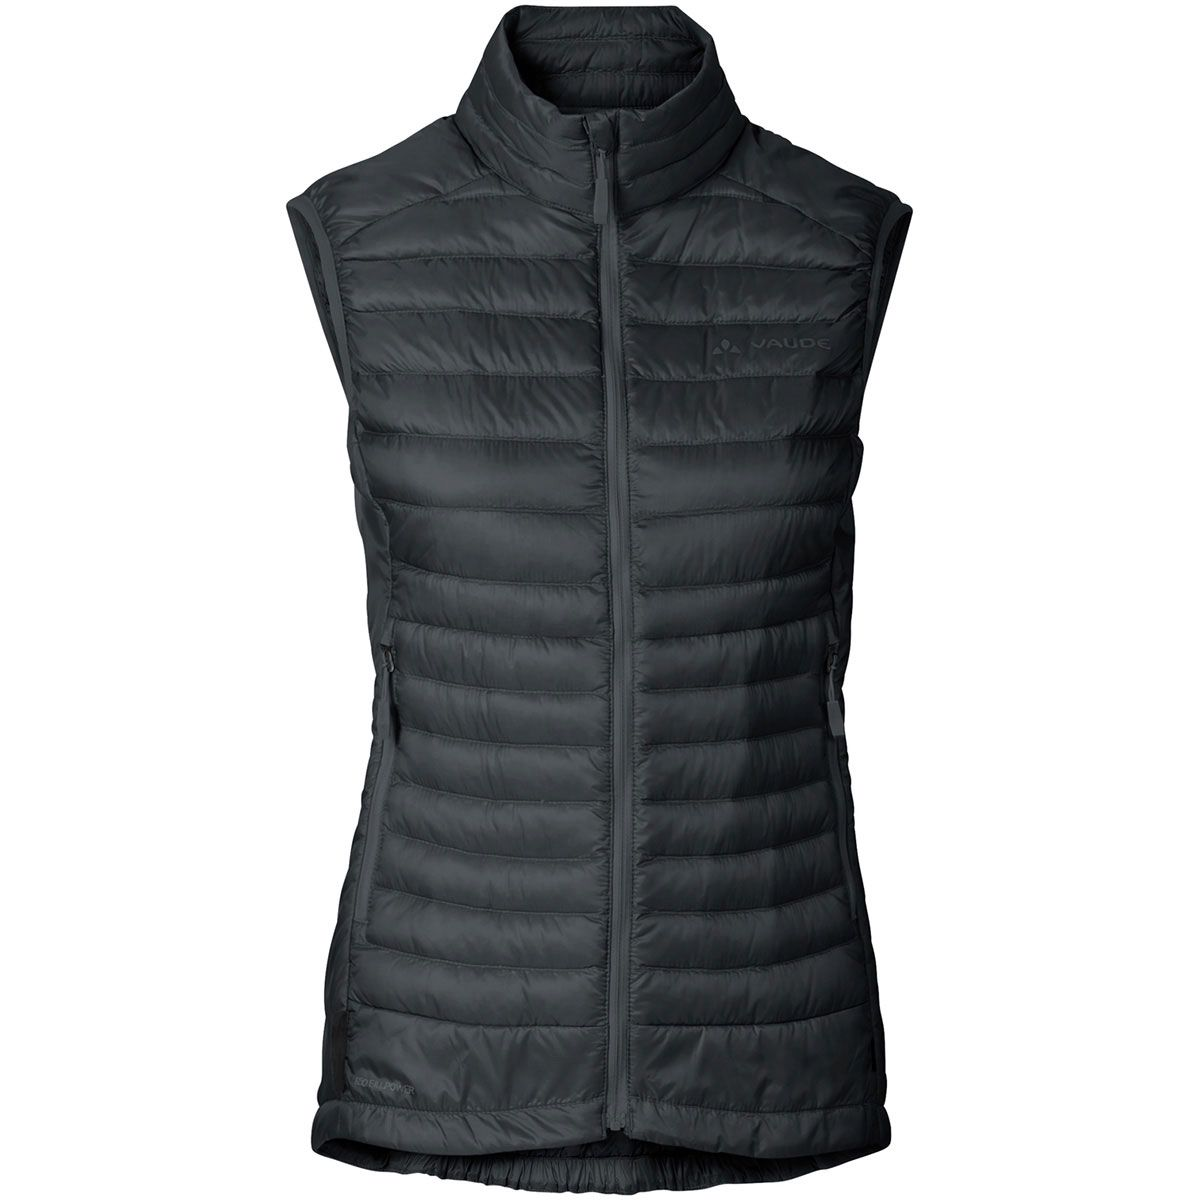 Vaude Damen Kabru Light II Weste (Größe XL, Schwarz) | Isolationswesten > Damen